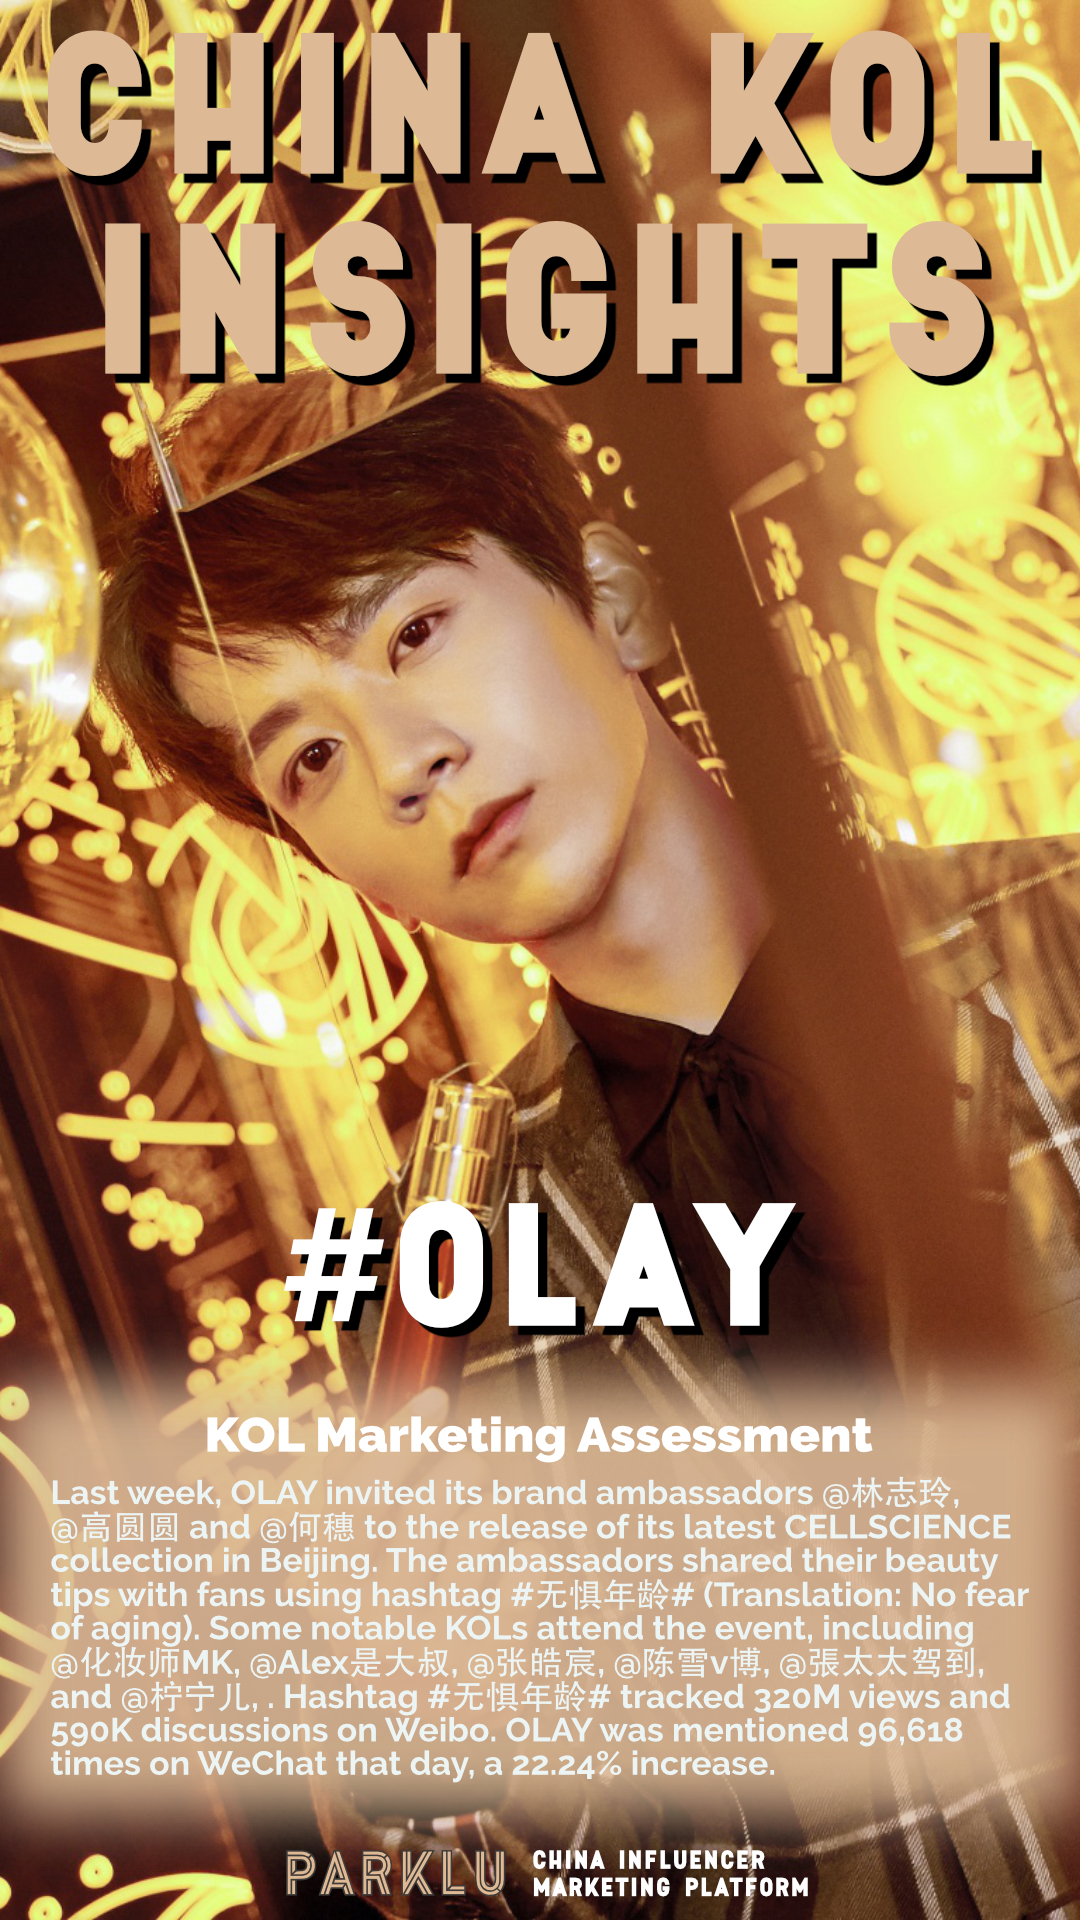 OLAY Releases CELLSCIENCE with China Brand Ambassadors